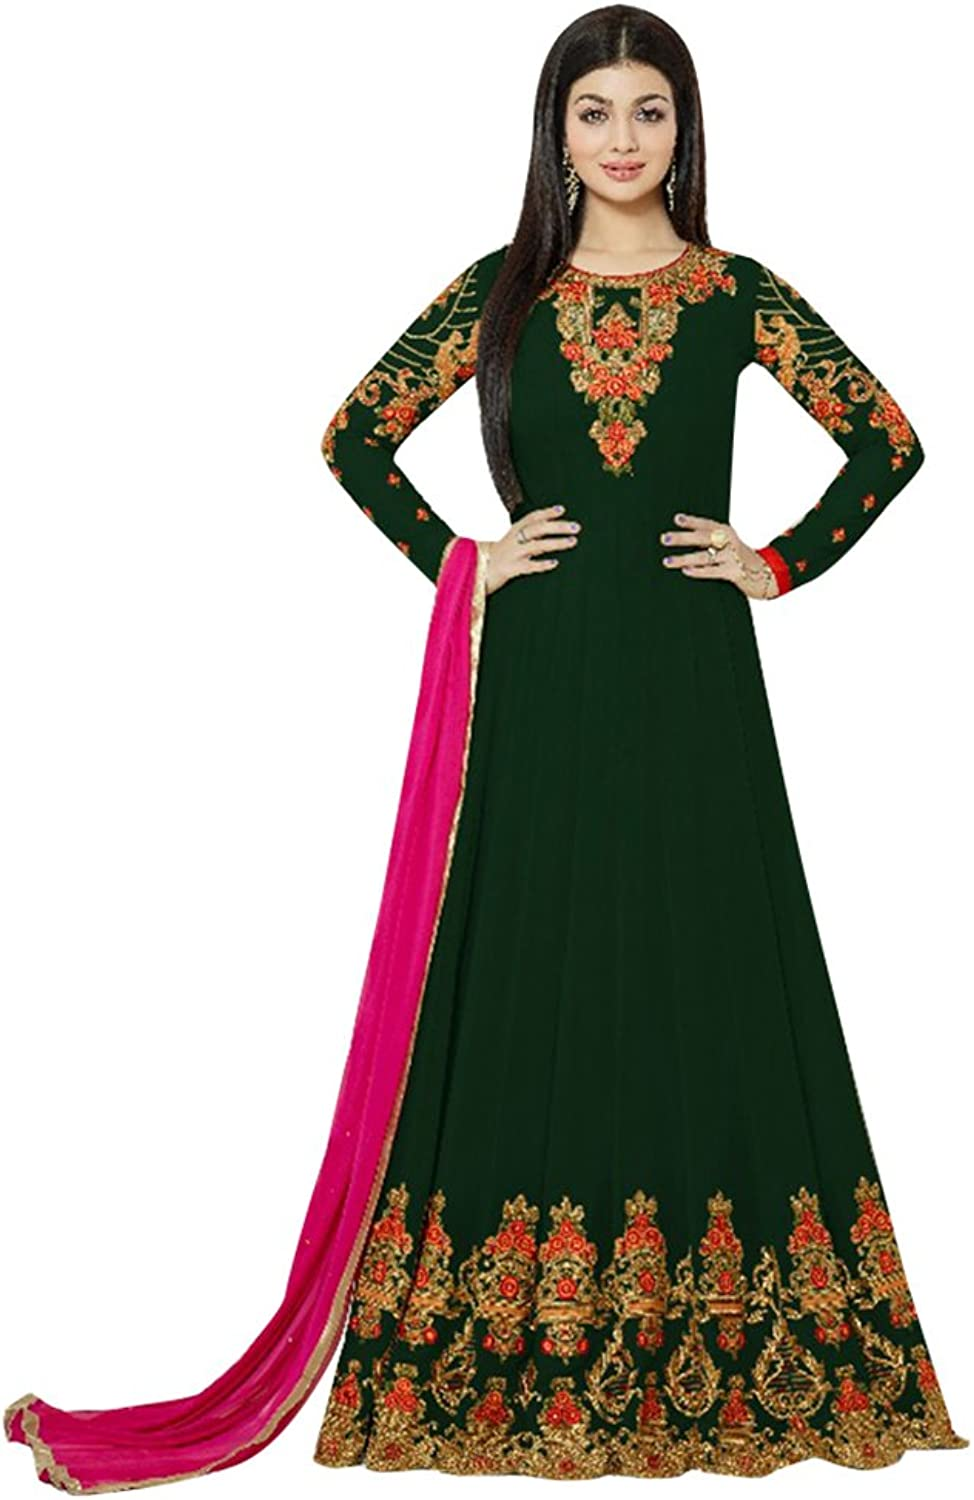 Punjabi Bollywood Anarkali Dresses for women Salwar Kameez Ceremony Wedding 758 1